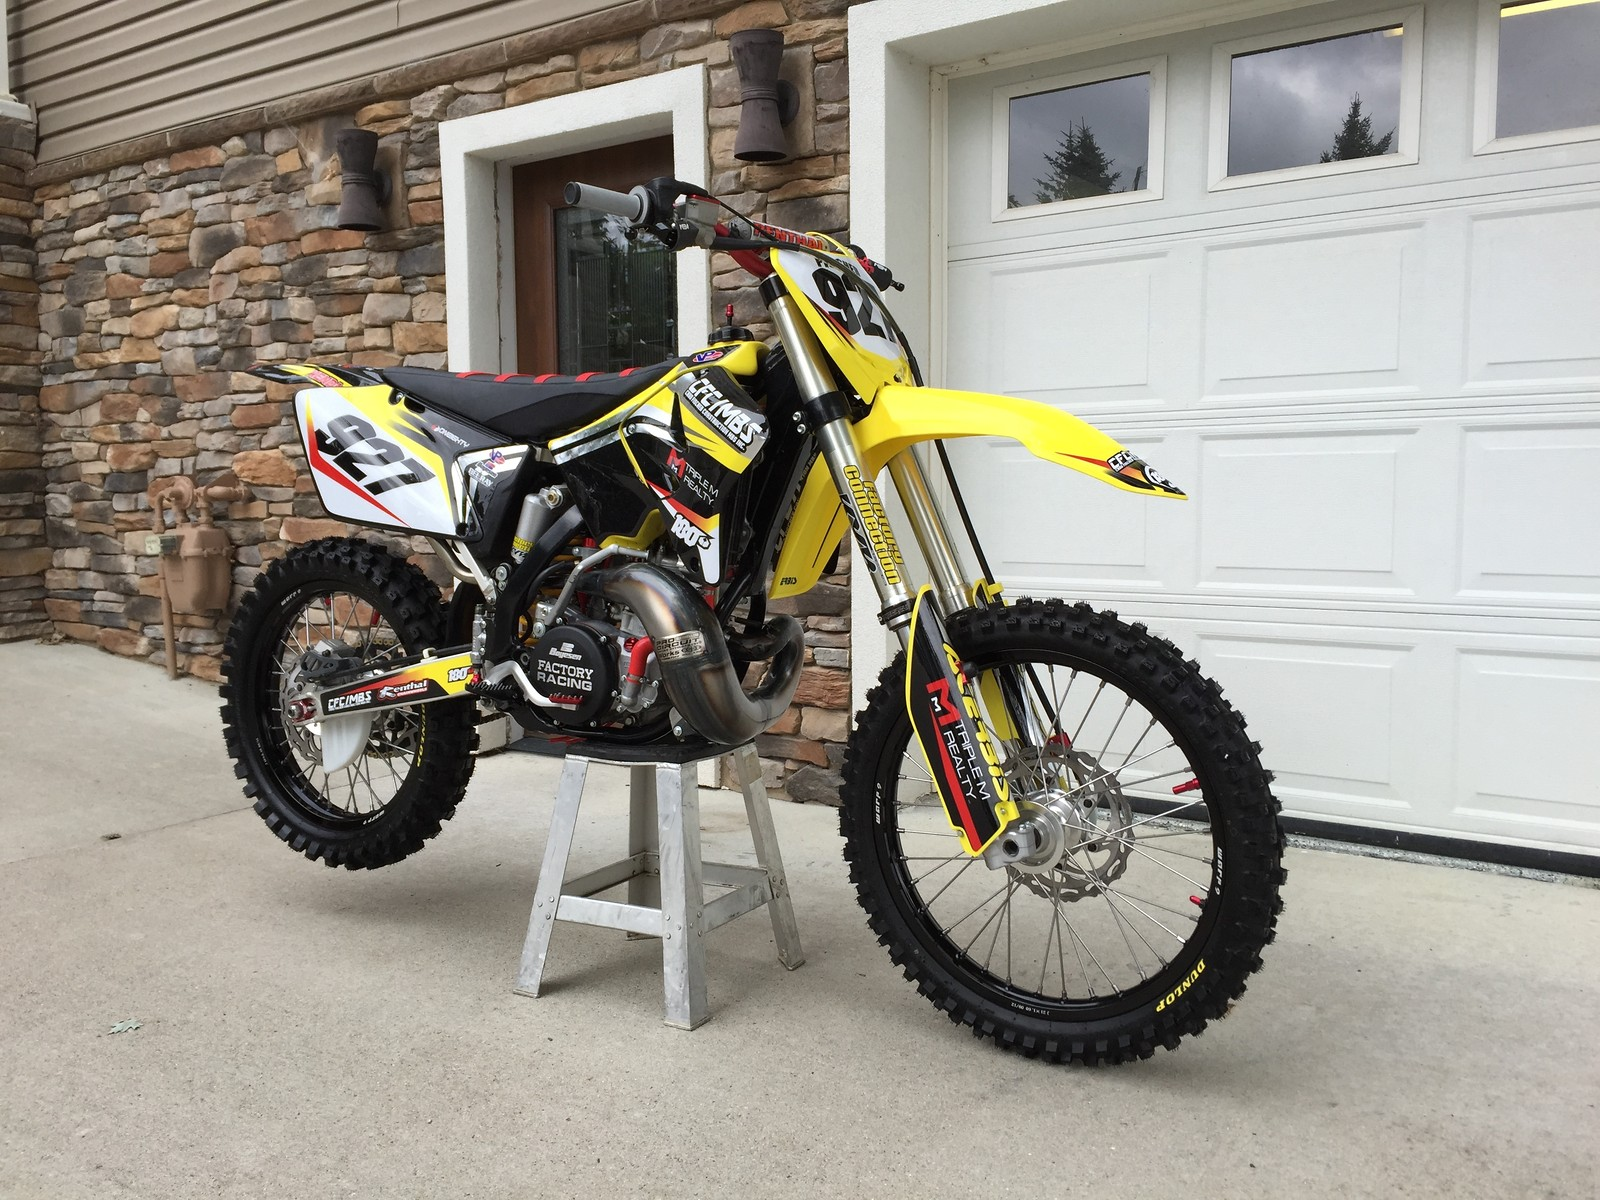 2003 RM 250 2 Stroke Before and After   Fischer927s Bike Check 1600x1200